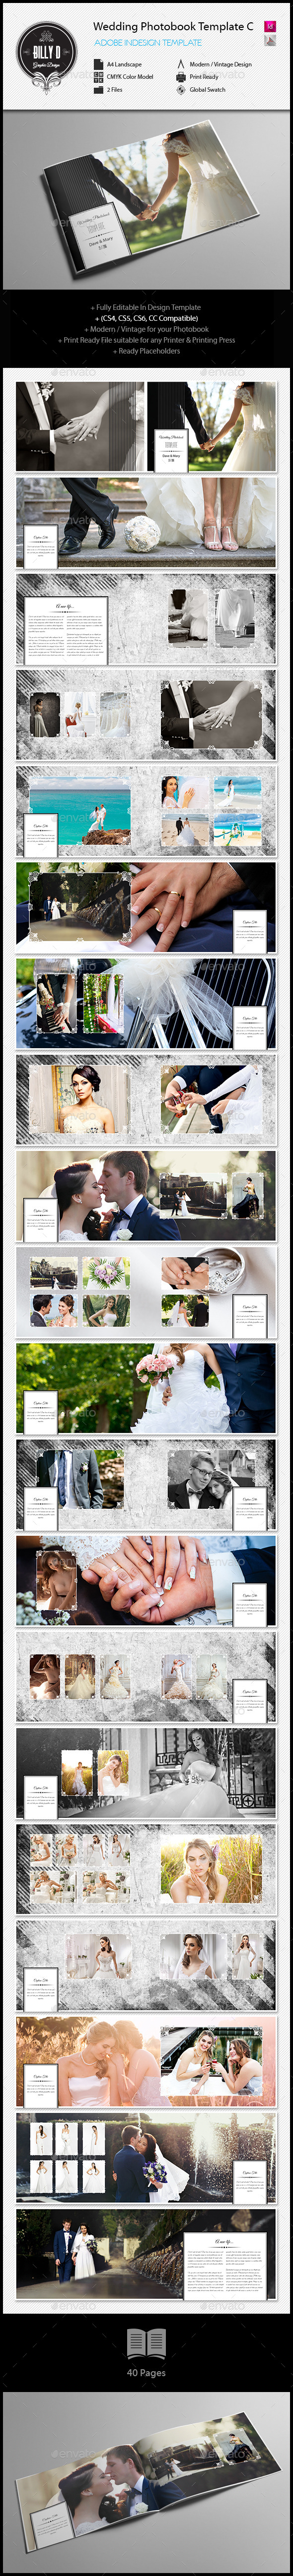 Wedding Photobook Template C | Template, Wedding and Layout design